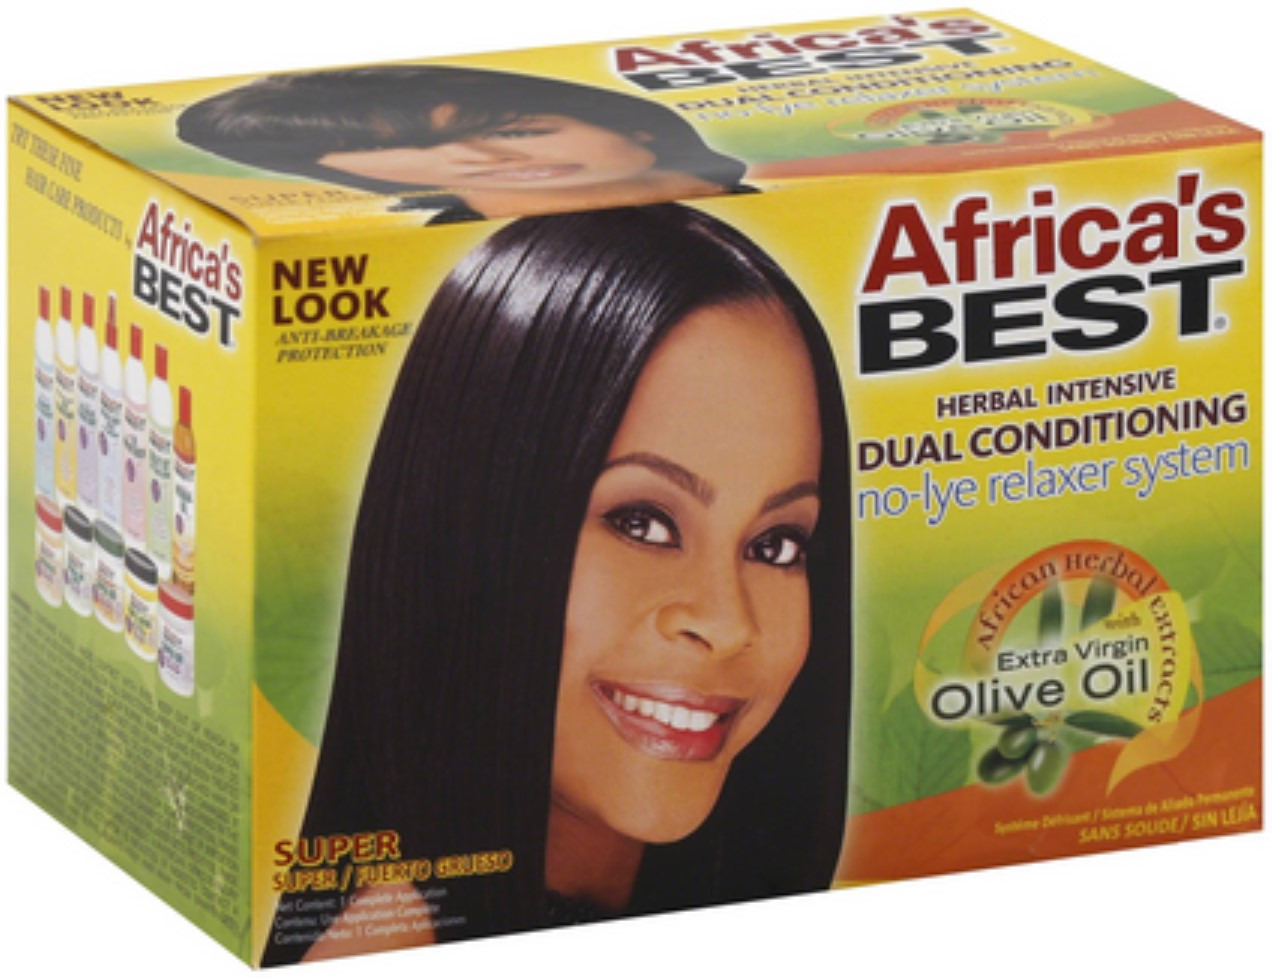 Africa's Best Herbal Conditioning No-Lye Relaxer System